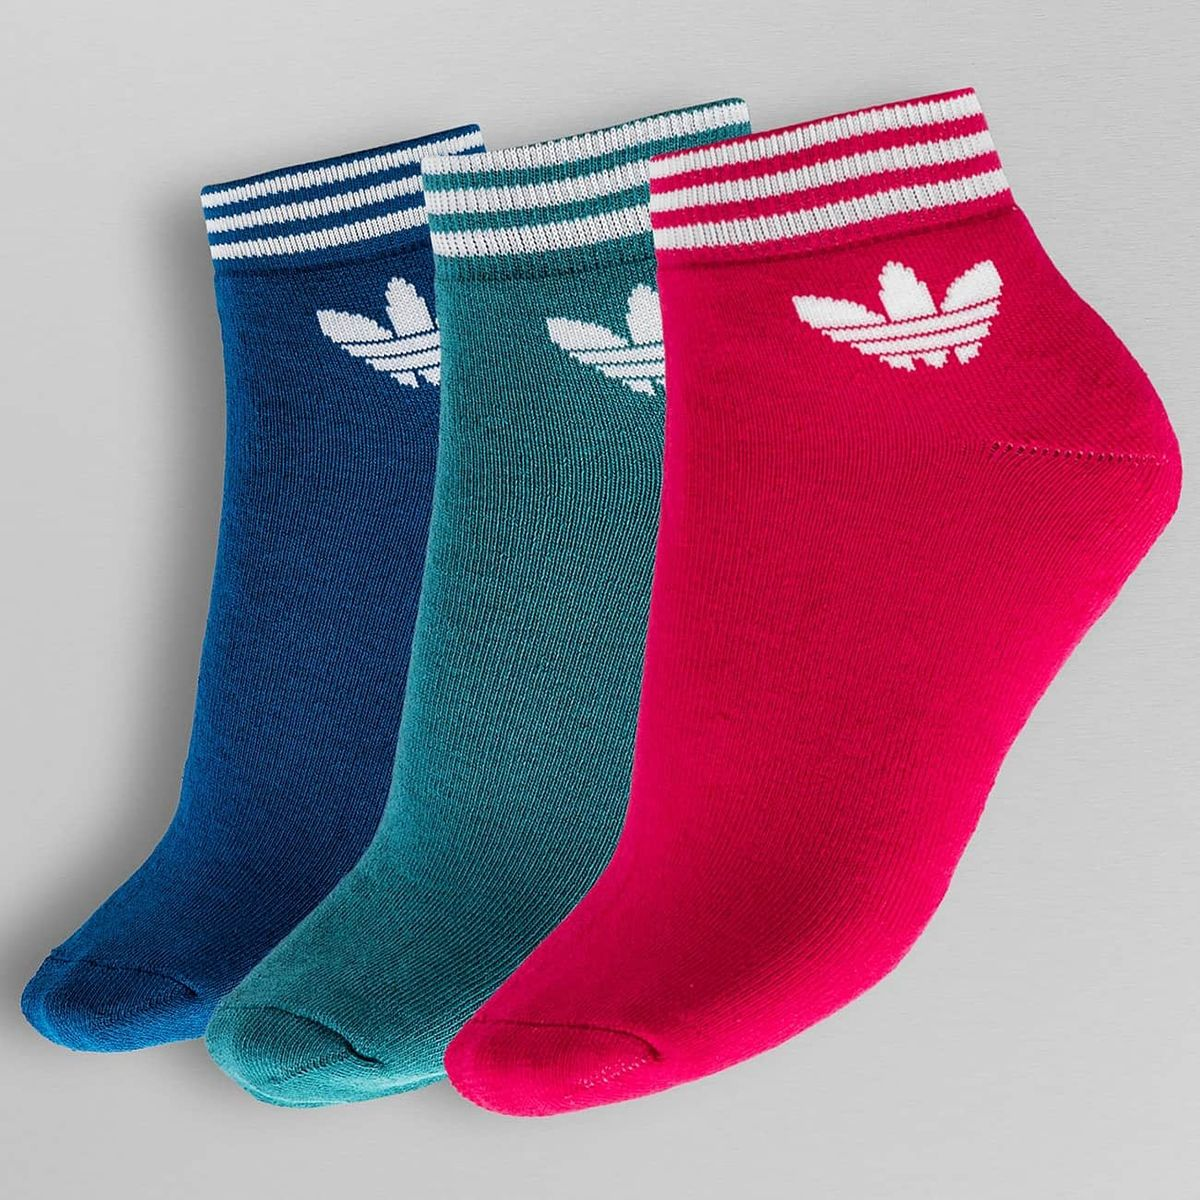 dirt cheap detailed images autumn shoes Type Socks adidas Originals Trefoil Ankle Stripes Socks 3 Pair